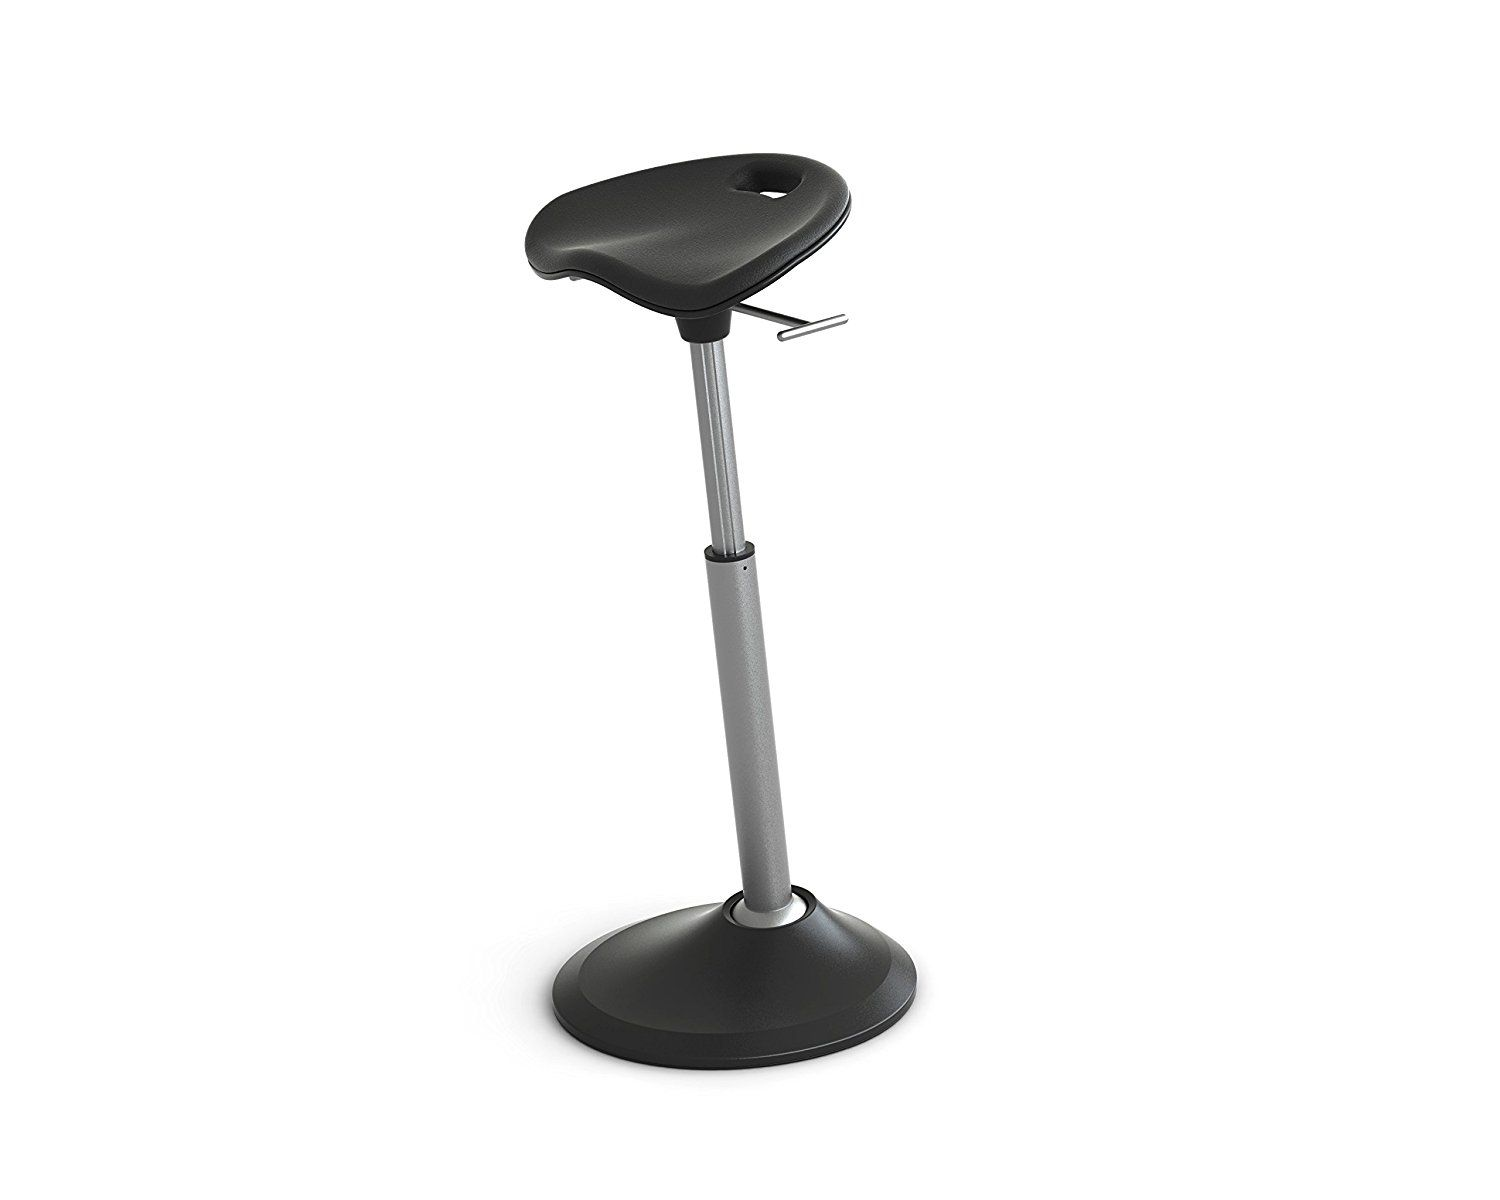 bungee chair amazon pub table with chairs ergonomic and portable leaning stools guide & review